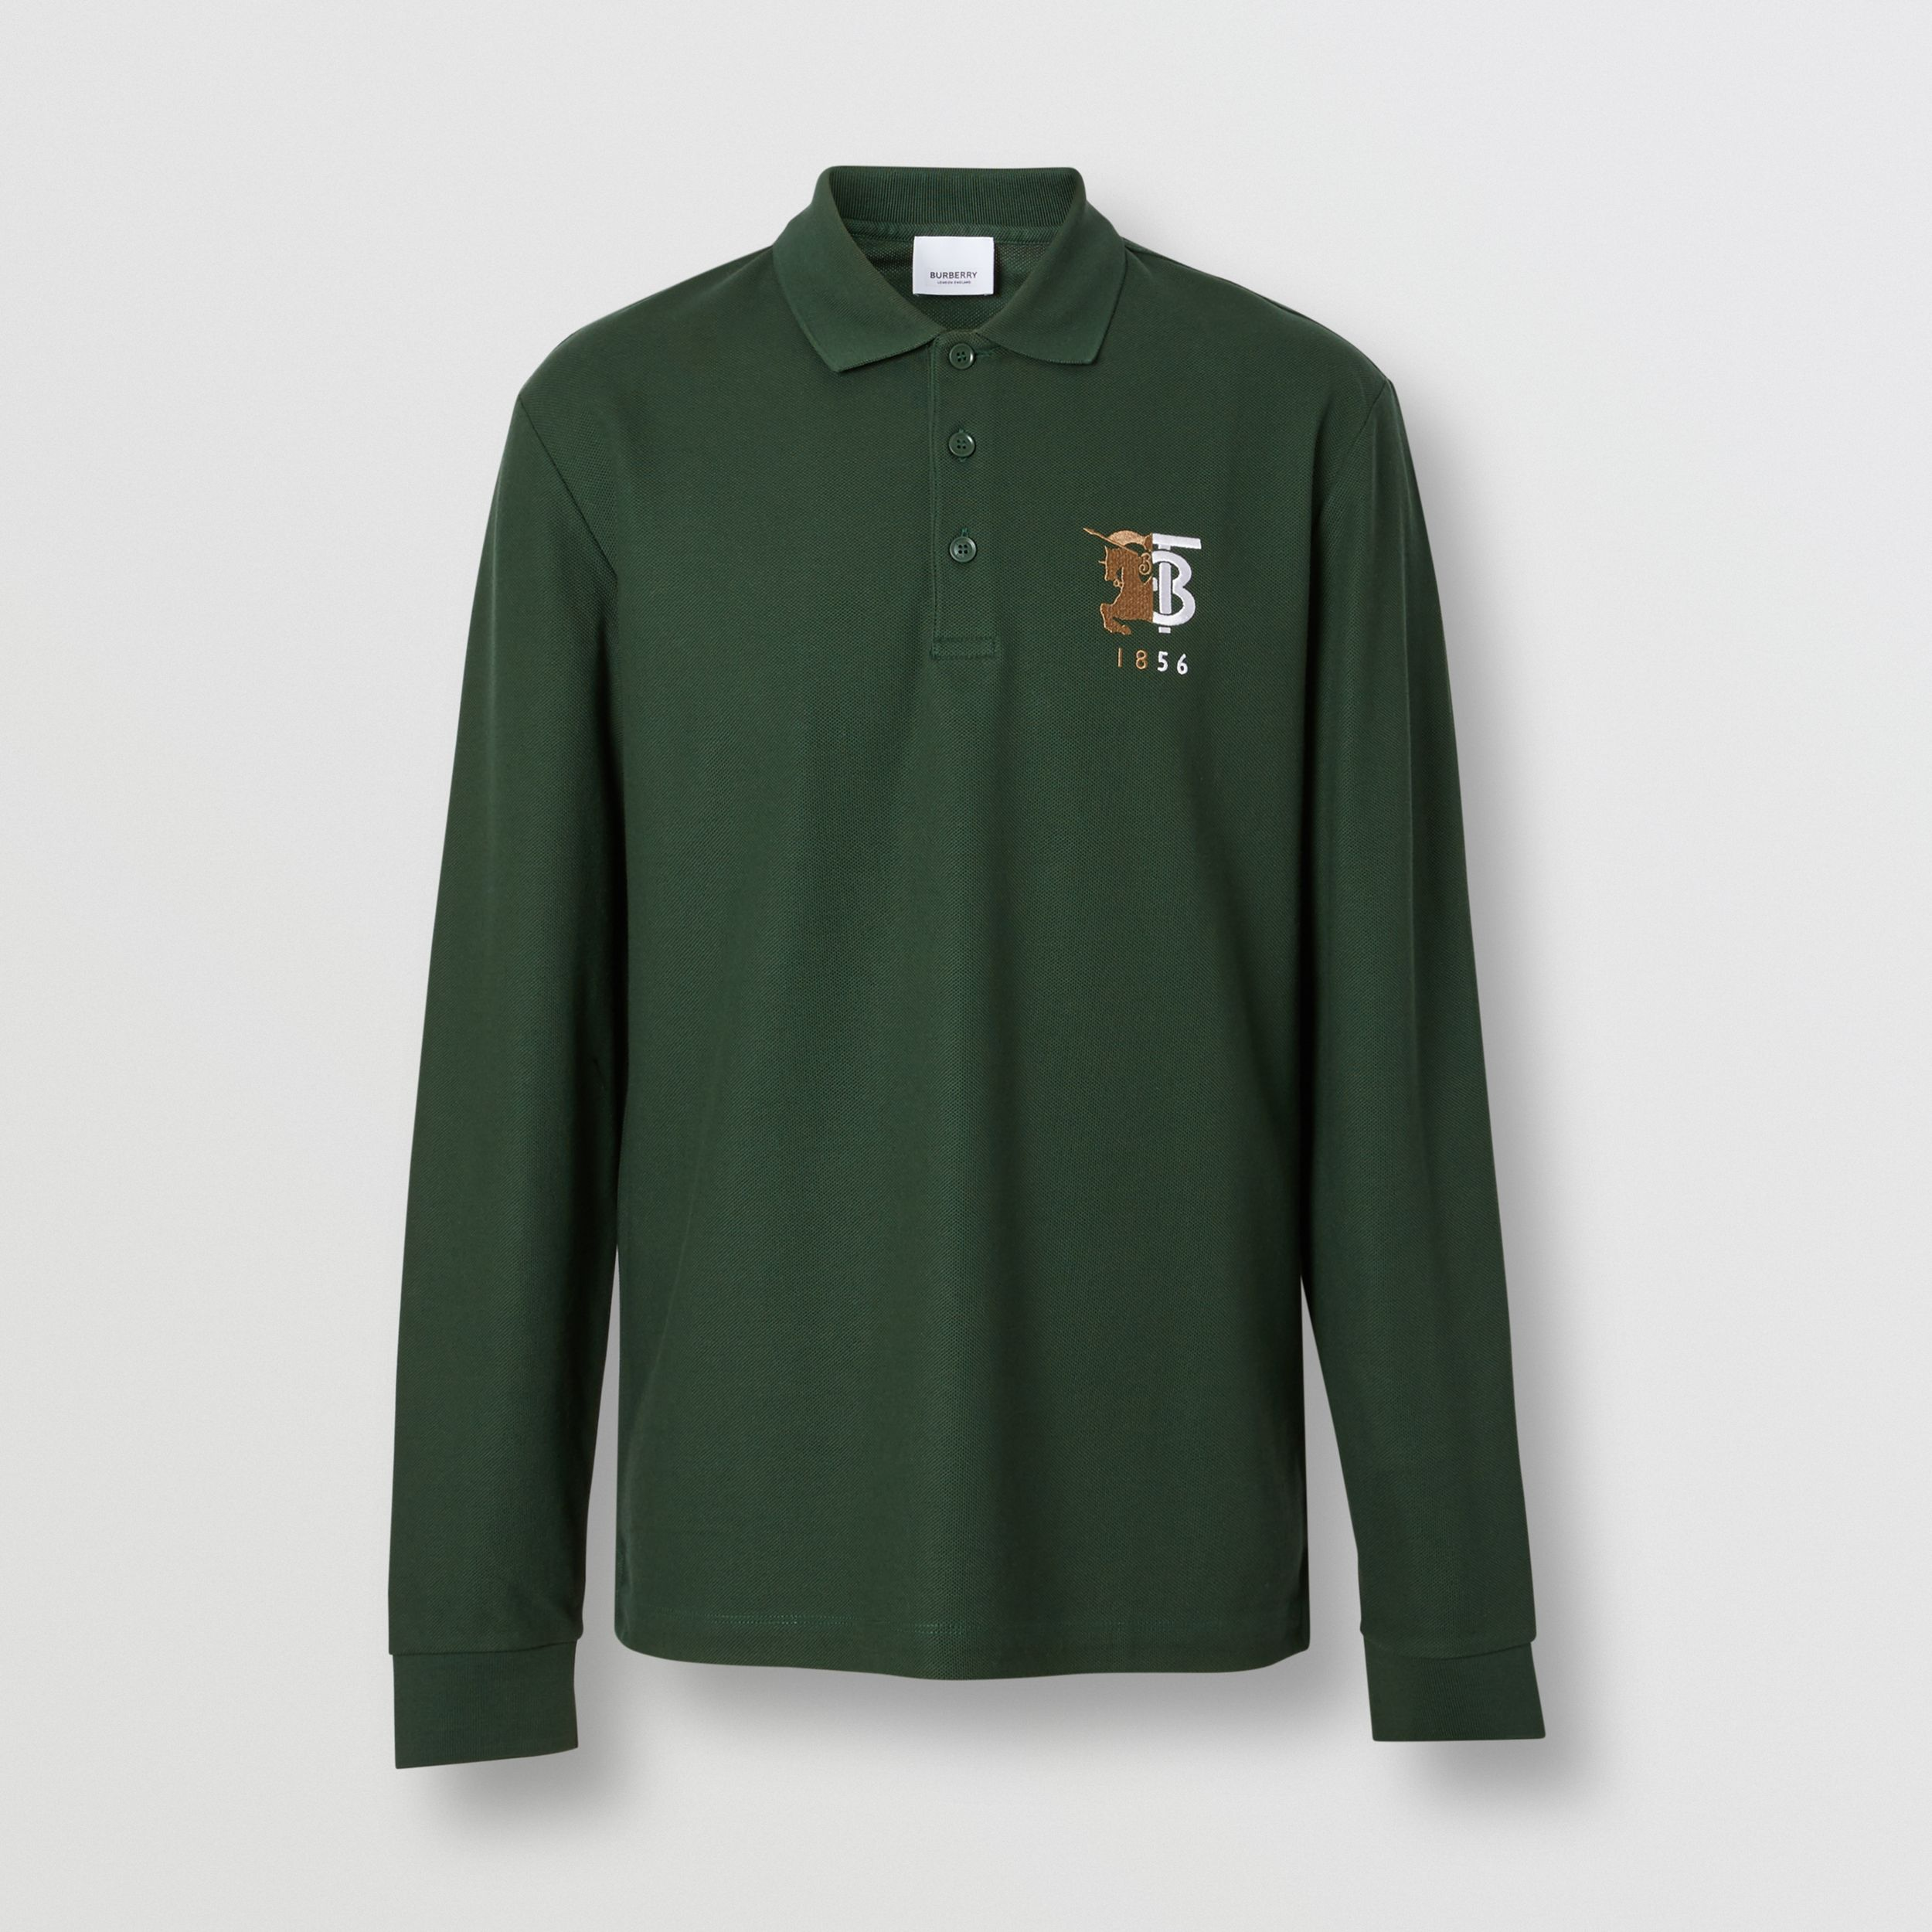 Long-sleeve Contrast Logo Graphic Cotton Polo Shirt in Dark Pine Green - Men | Burberry - 4